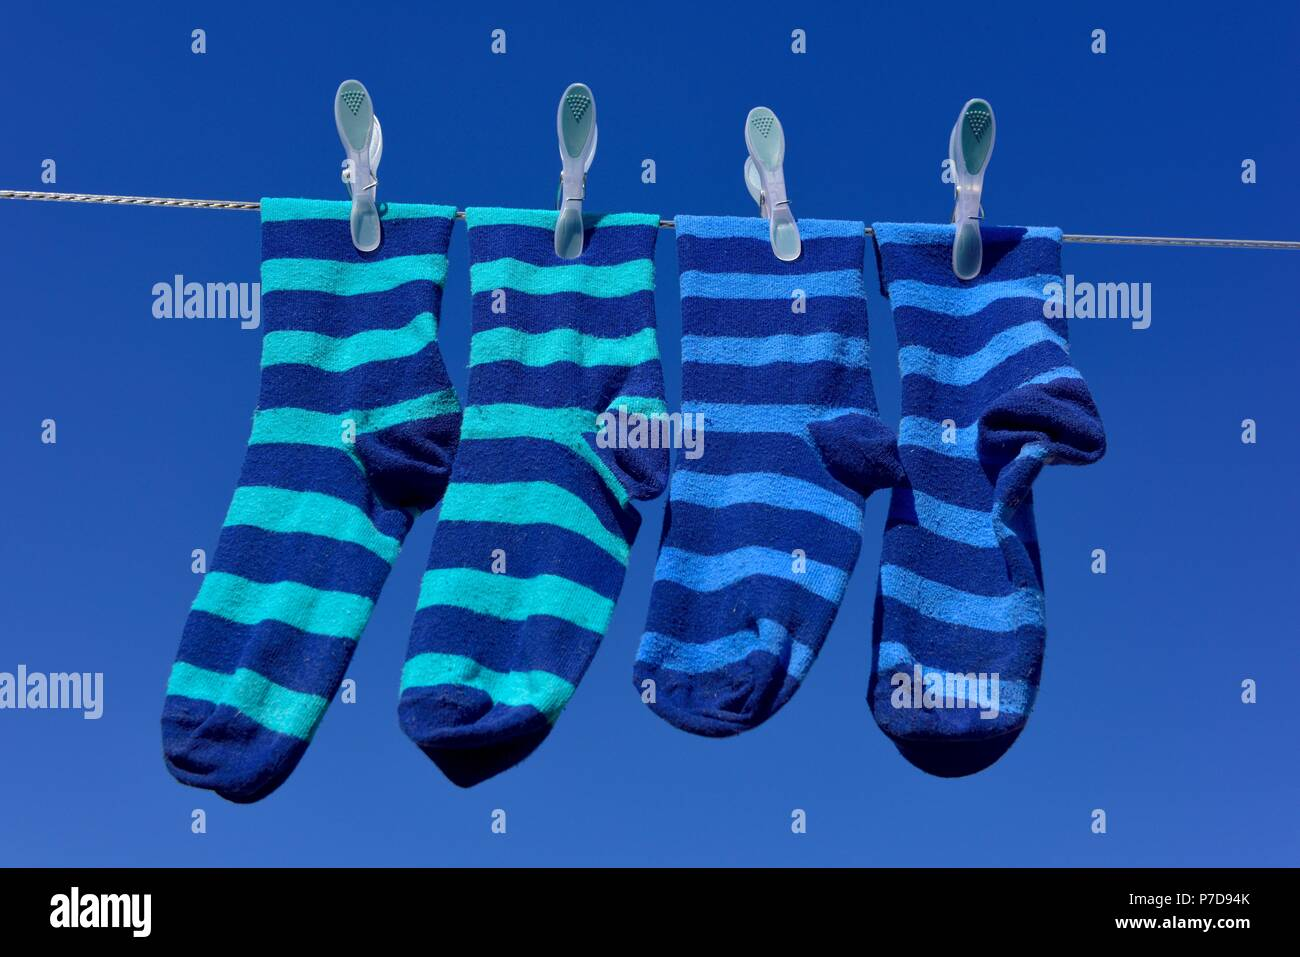 Two pairs of striped blue socks hanging on a washing line against a blue sky on a sunny day. - Stock Image